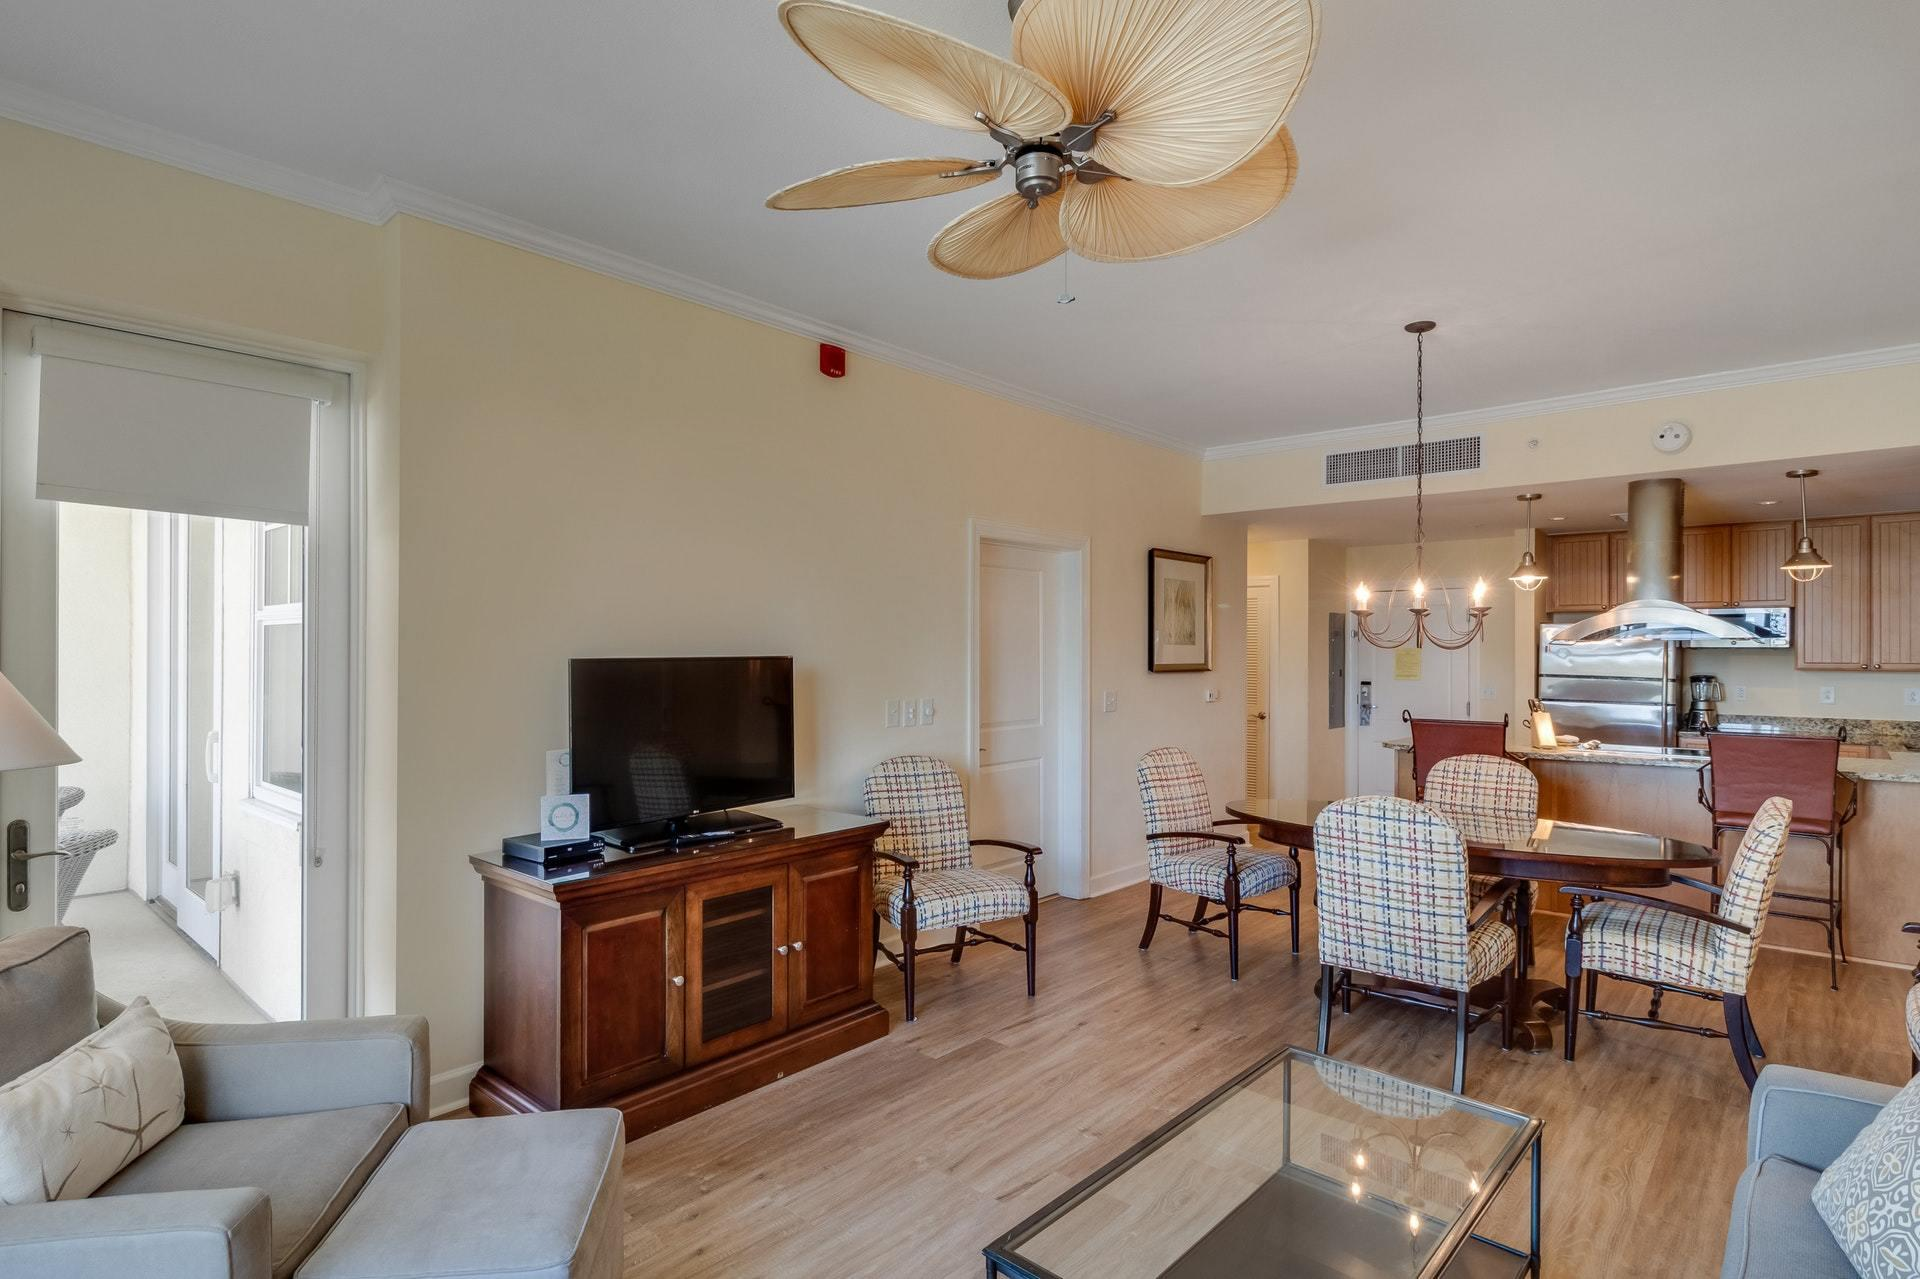 Wild Dunes Homes For Sale - 505/507 Village At Wild Dunes, Isle of Palms, SC - 23